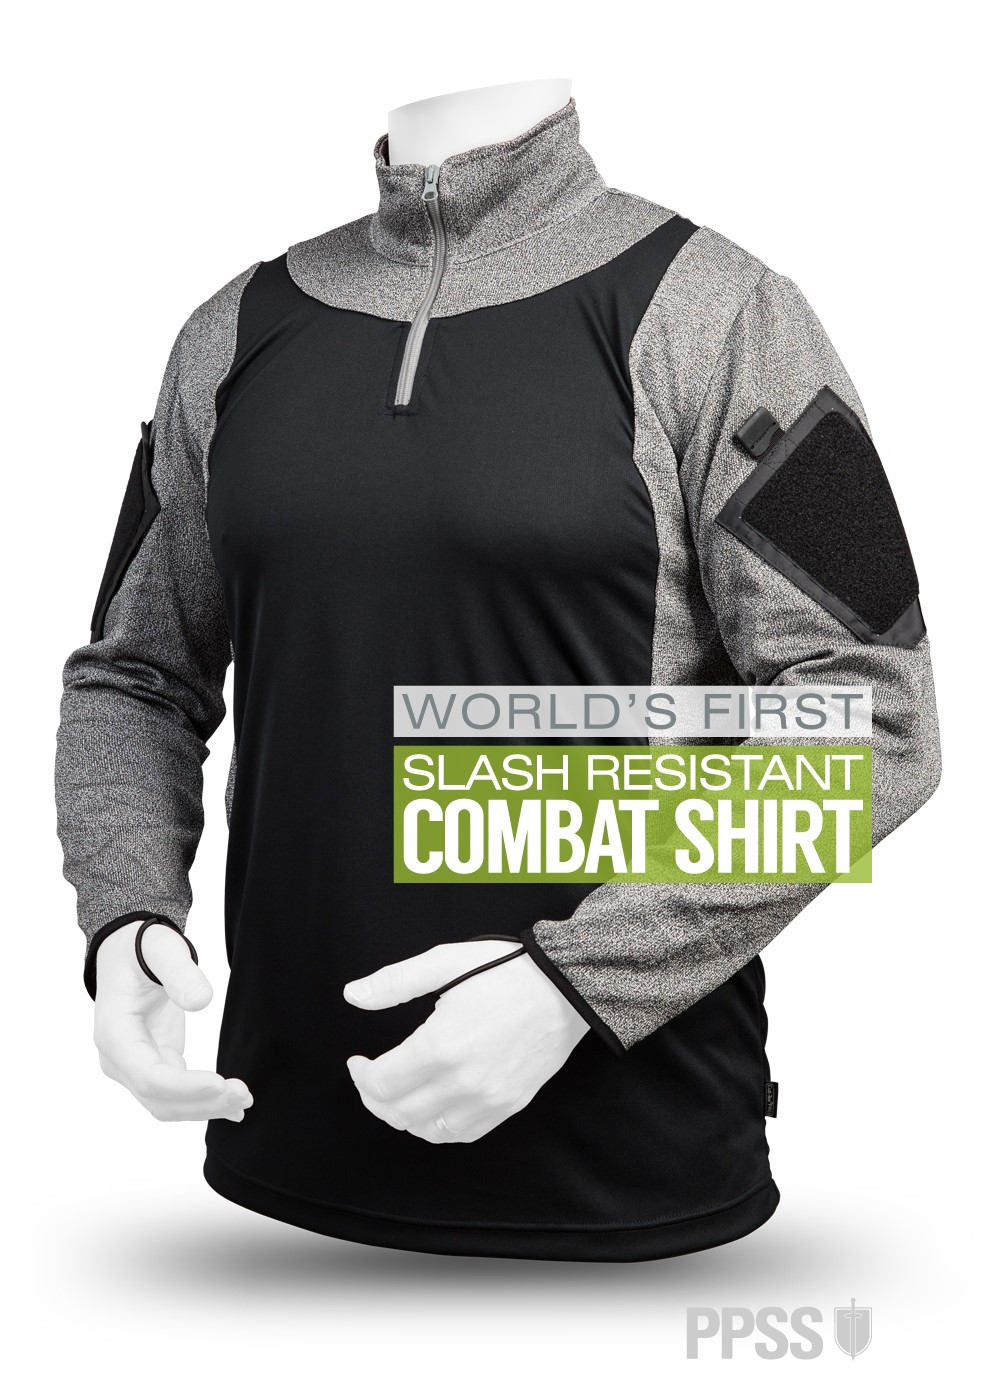 The Worlds First Slash Resistant Combat Shirt  The